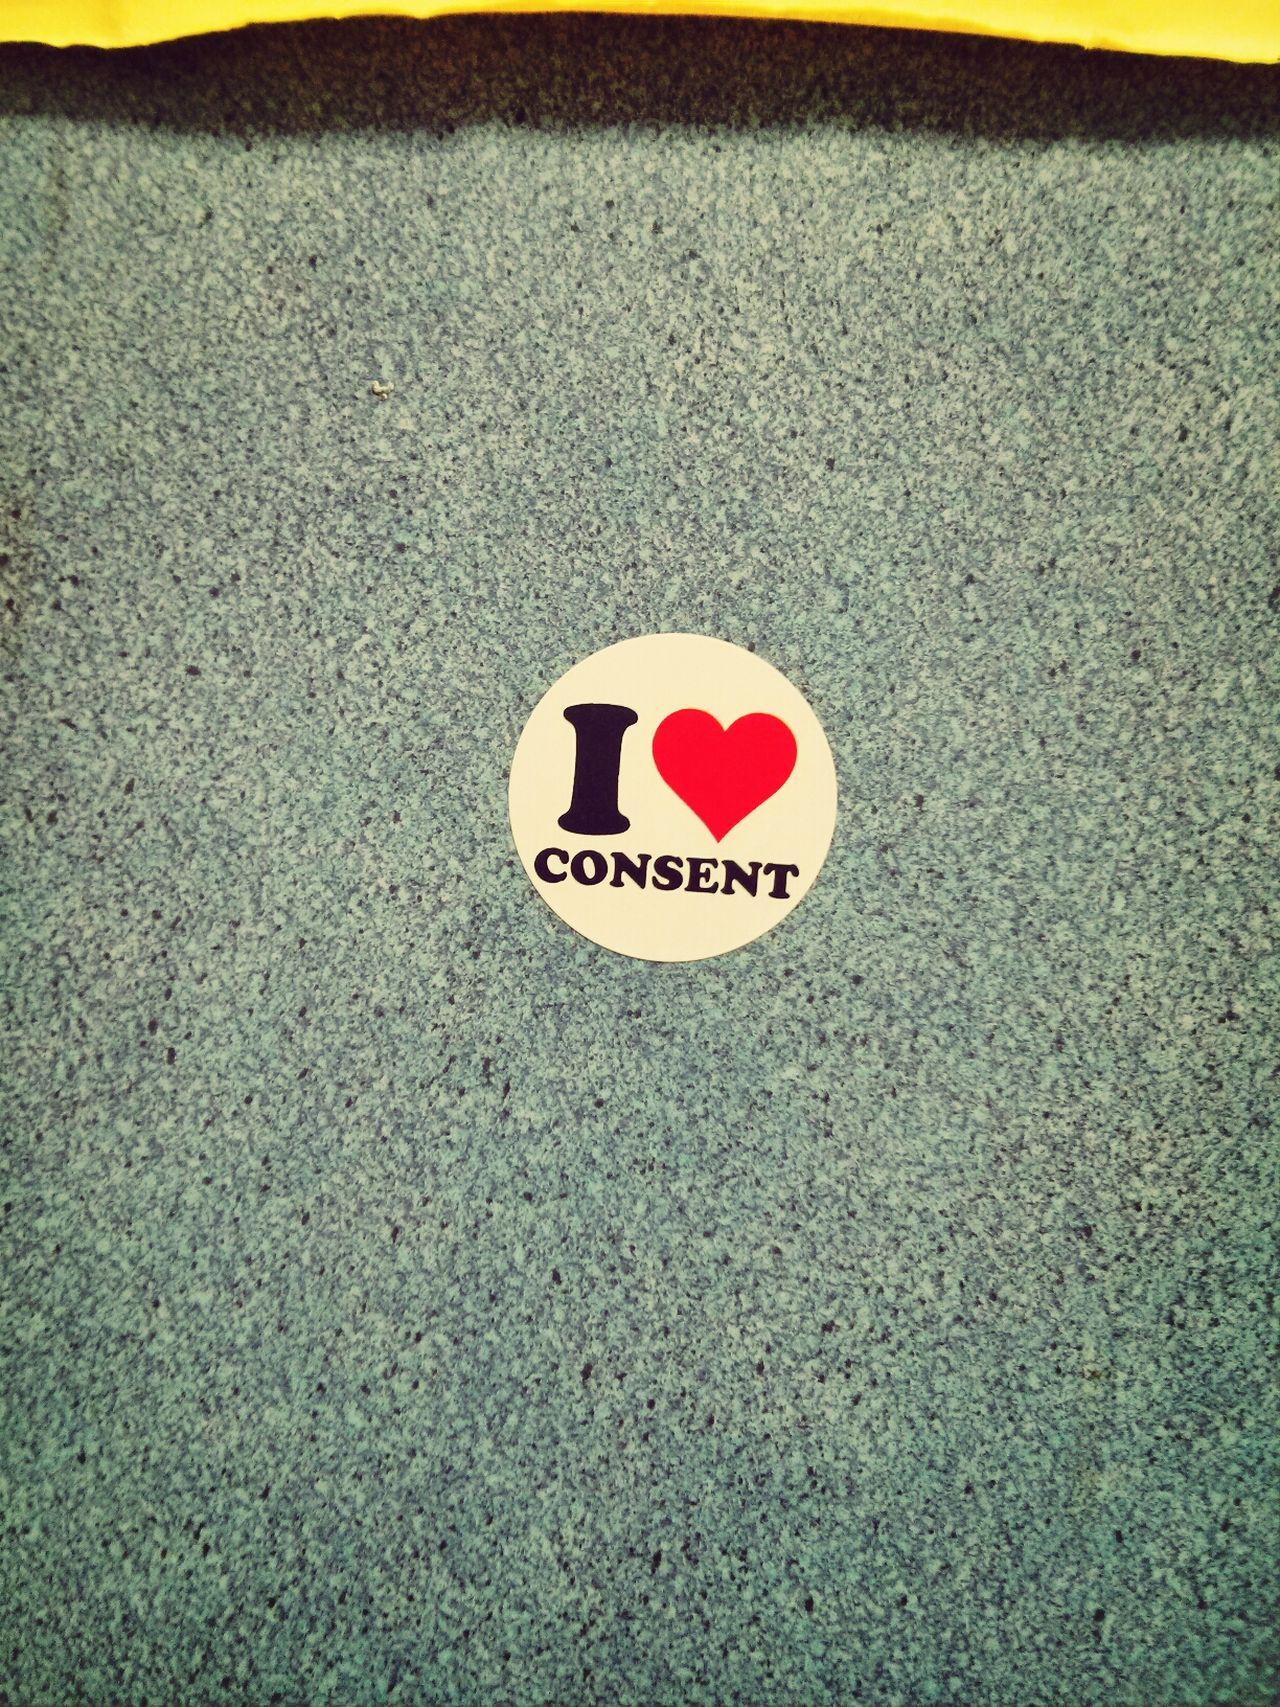 im seeing them everywhere! Consent